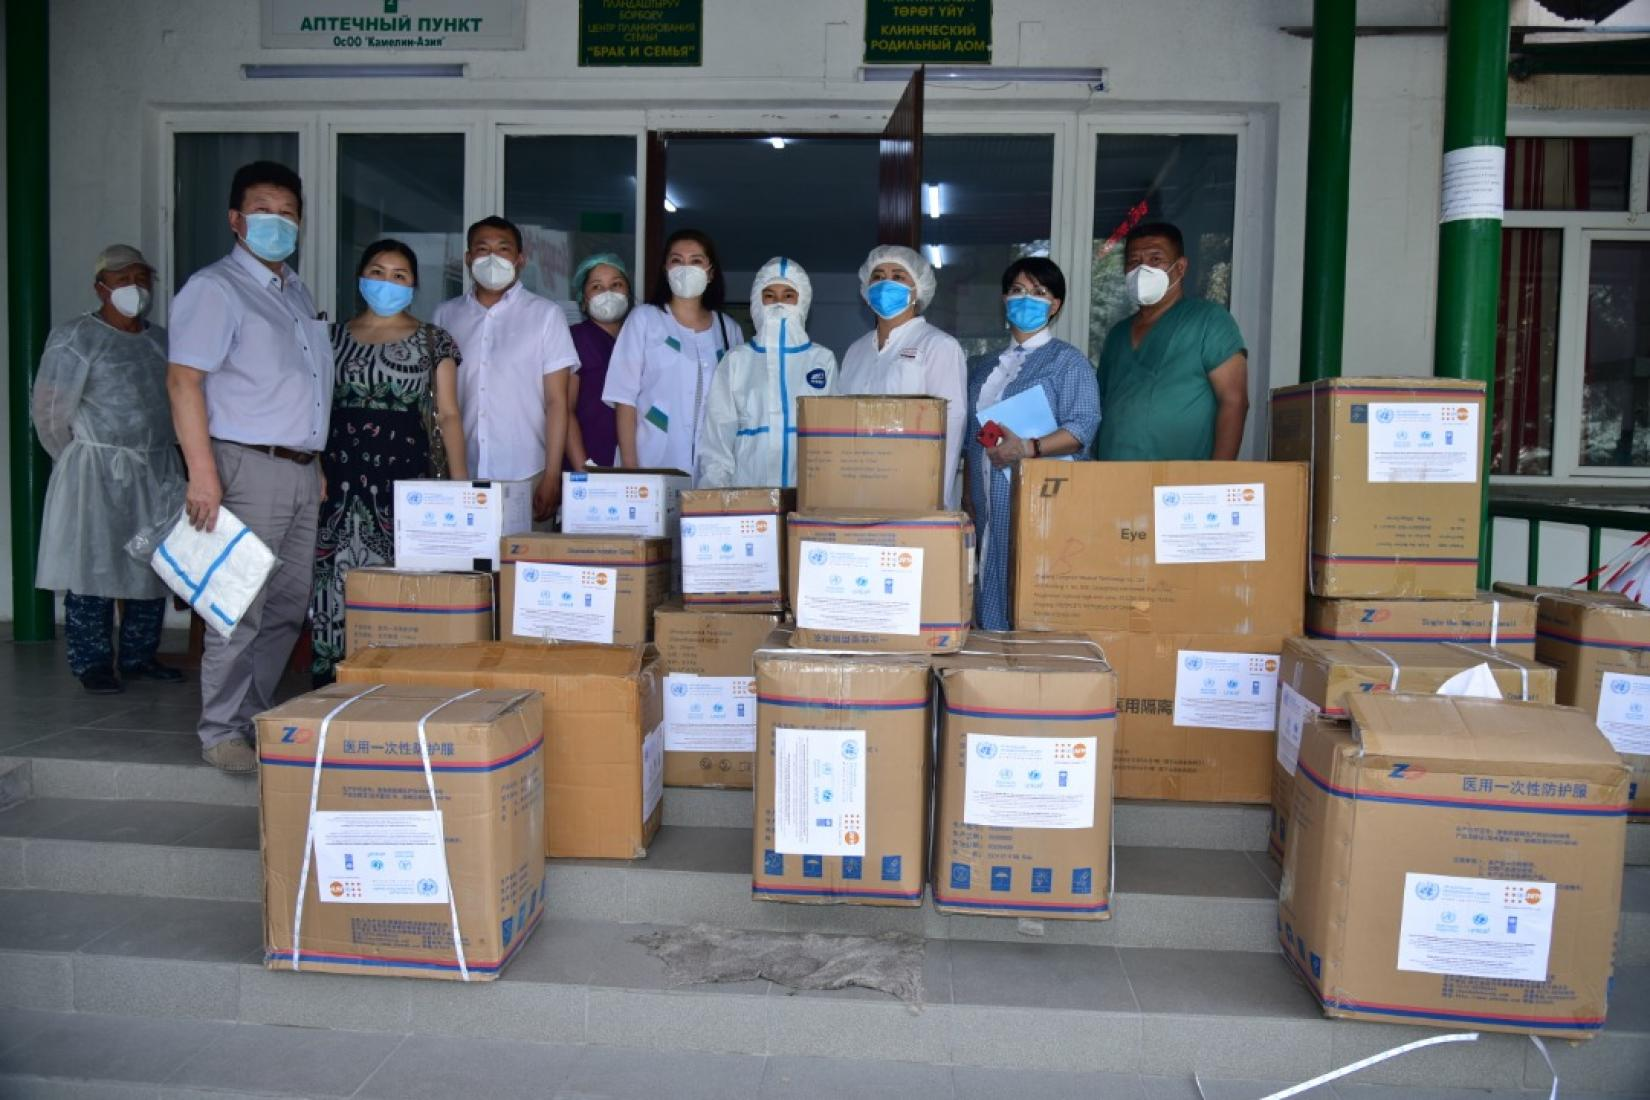 UN personnel and healthcare workers stand behind donation boxes wearing protective gear.